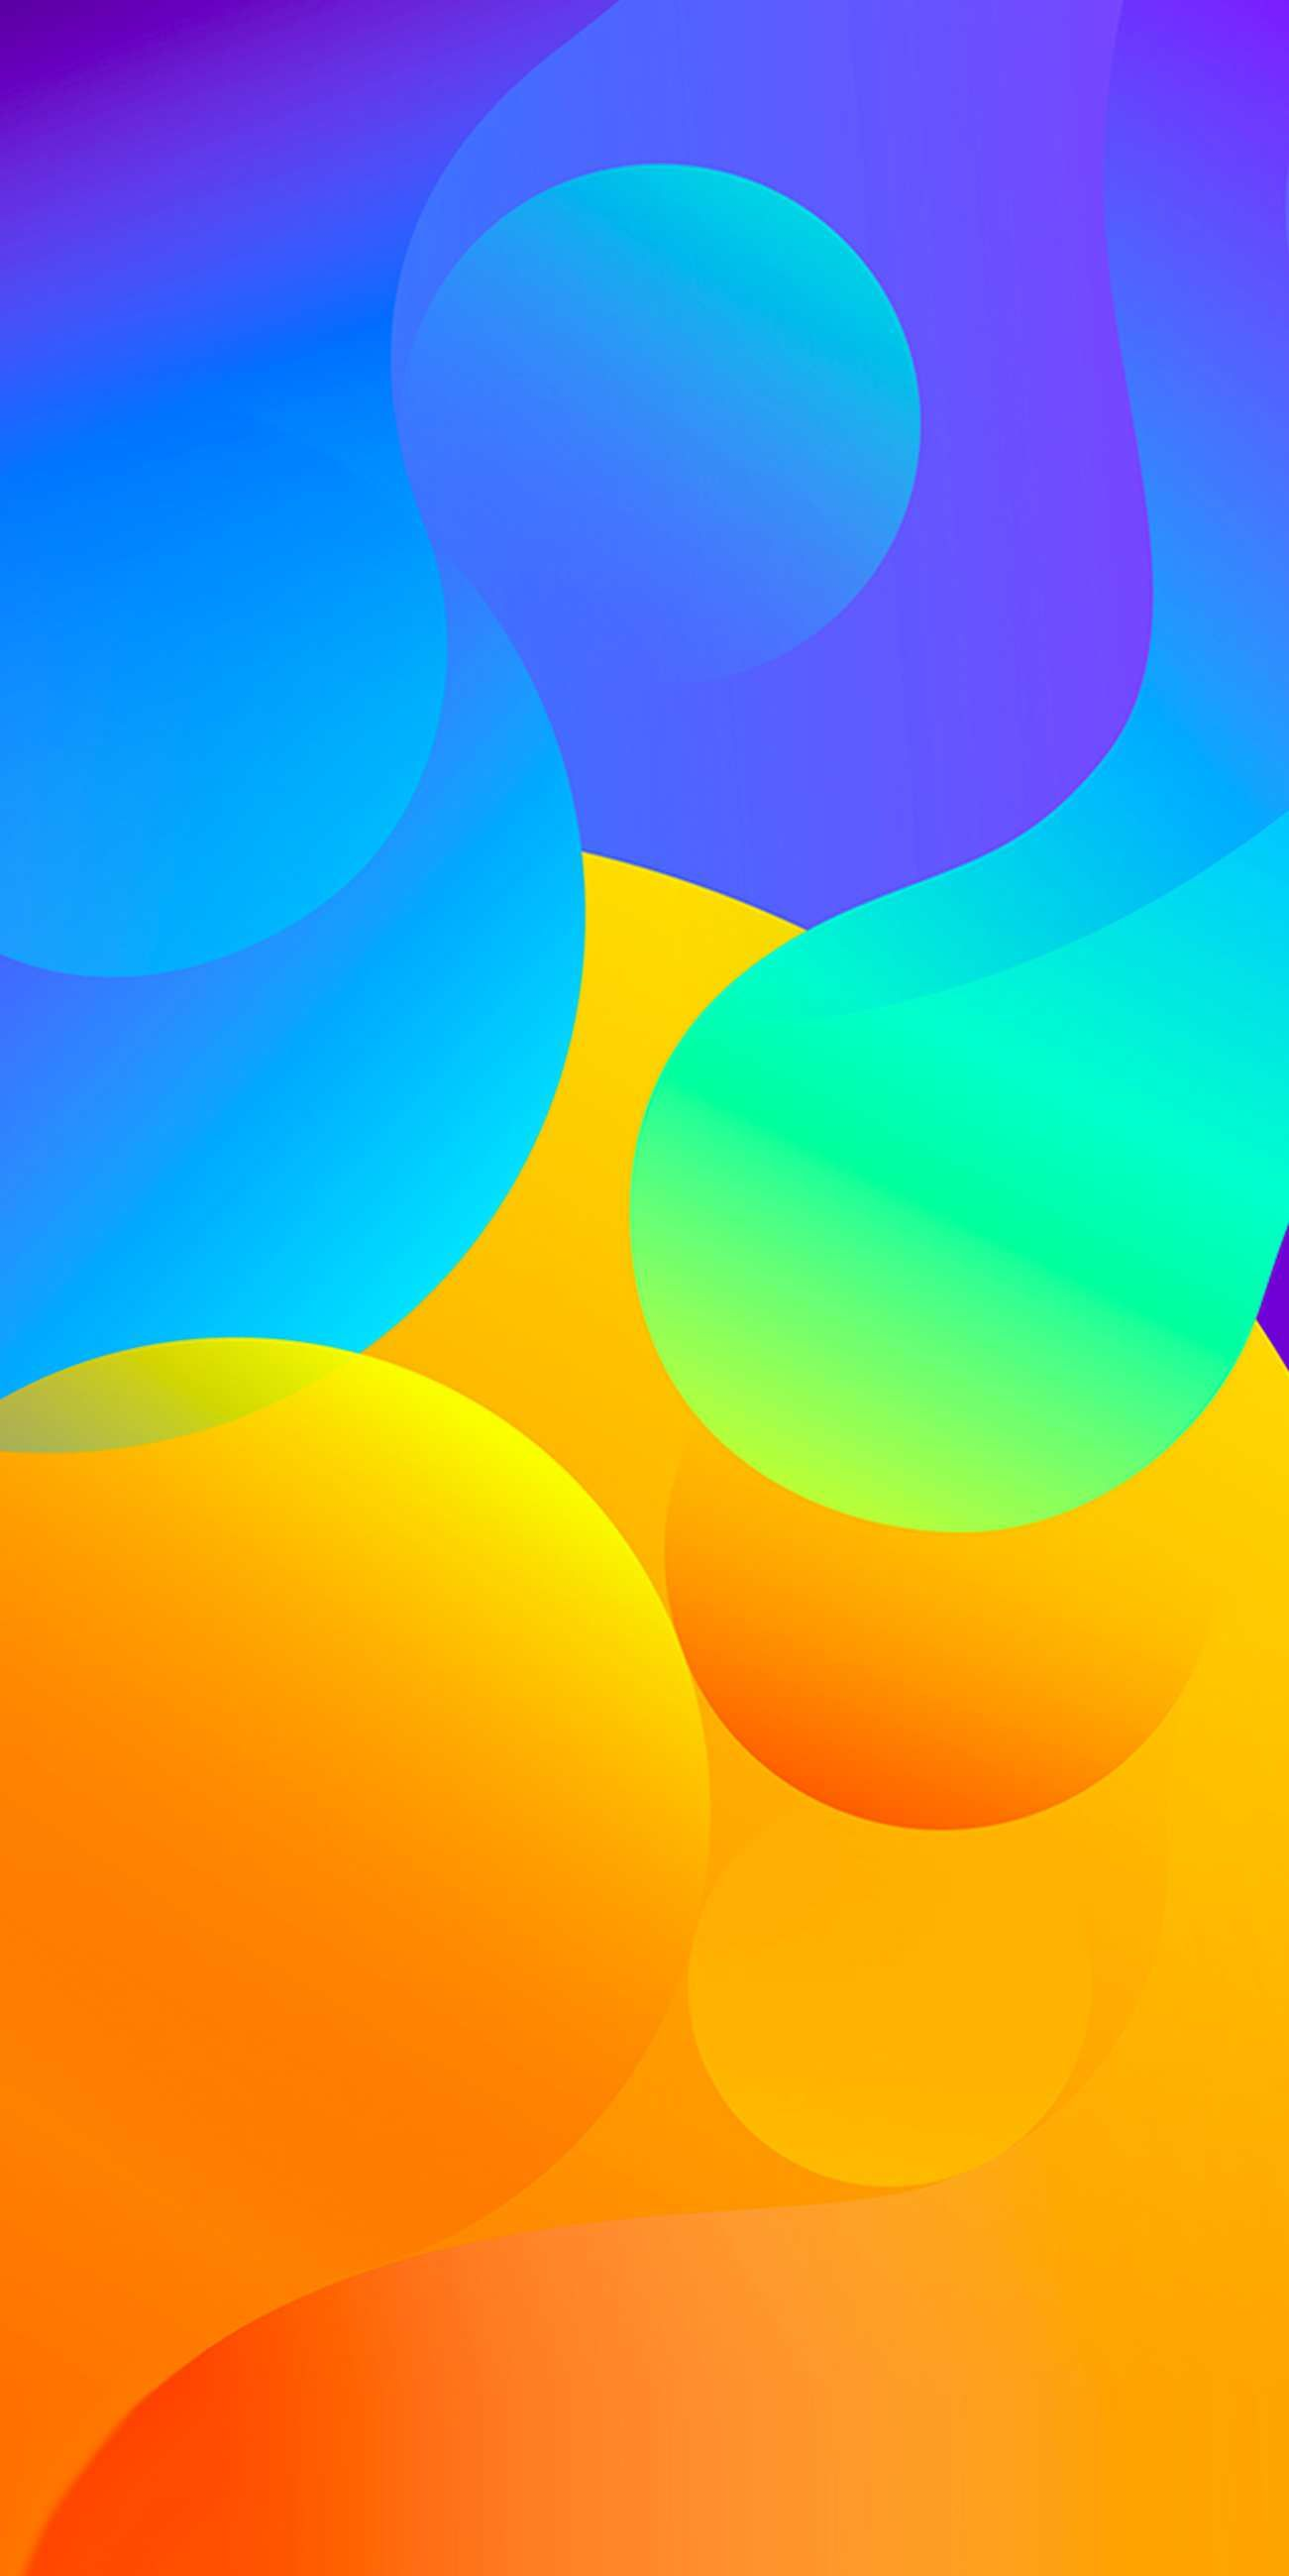 Colour Circles Abstract Iphone Wallpaper Abstract Iphone Wallpaper Color Wallpaper Iphone Abstract Wallpaper Backgrounds